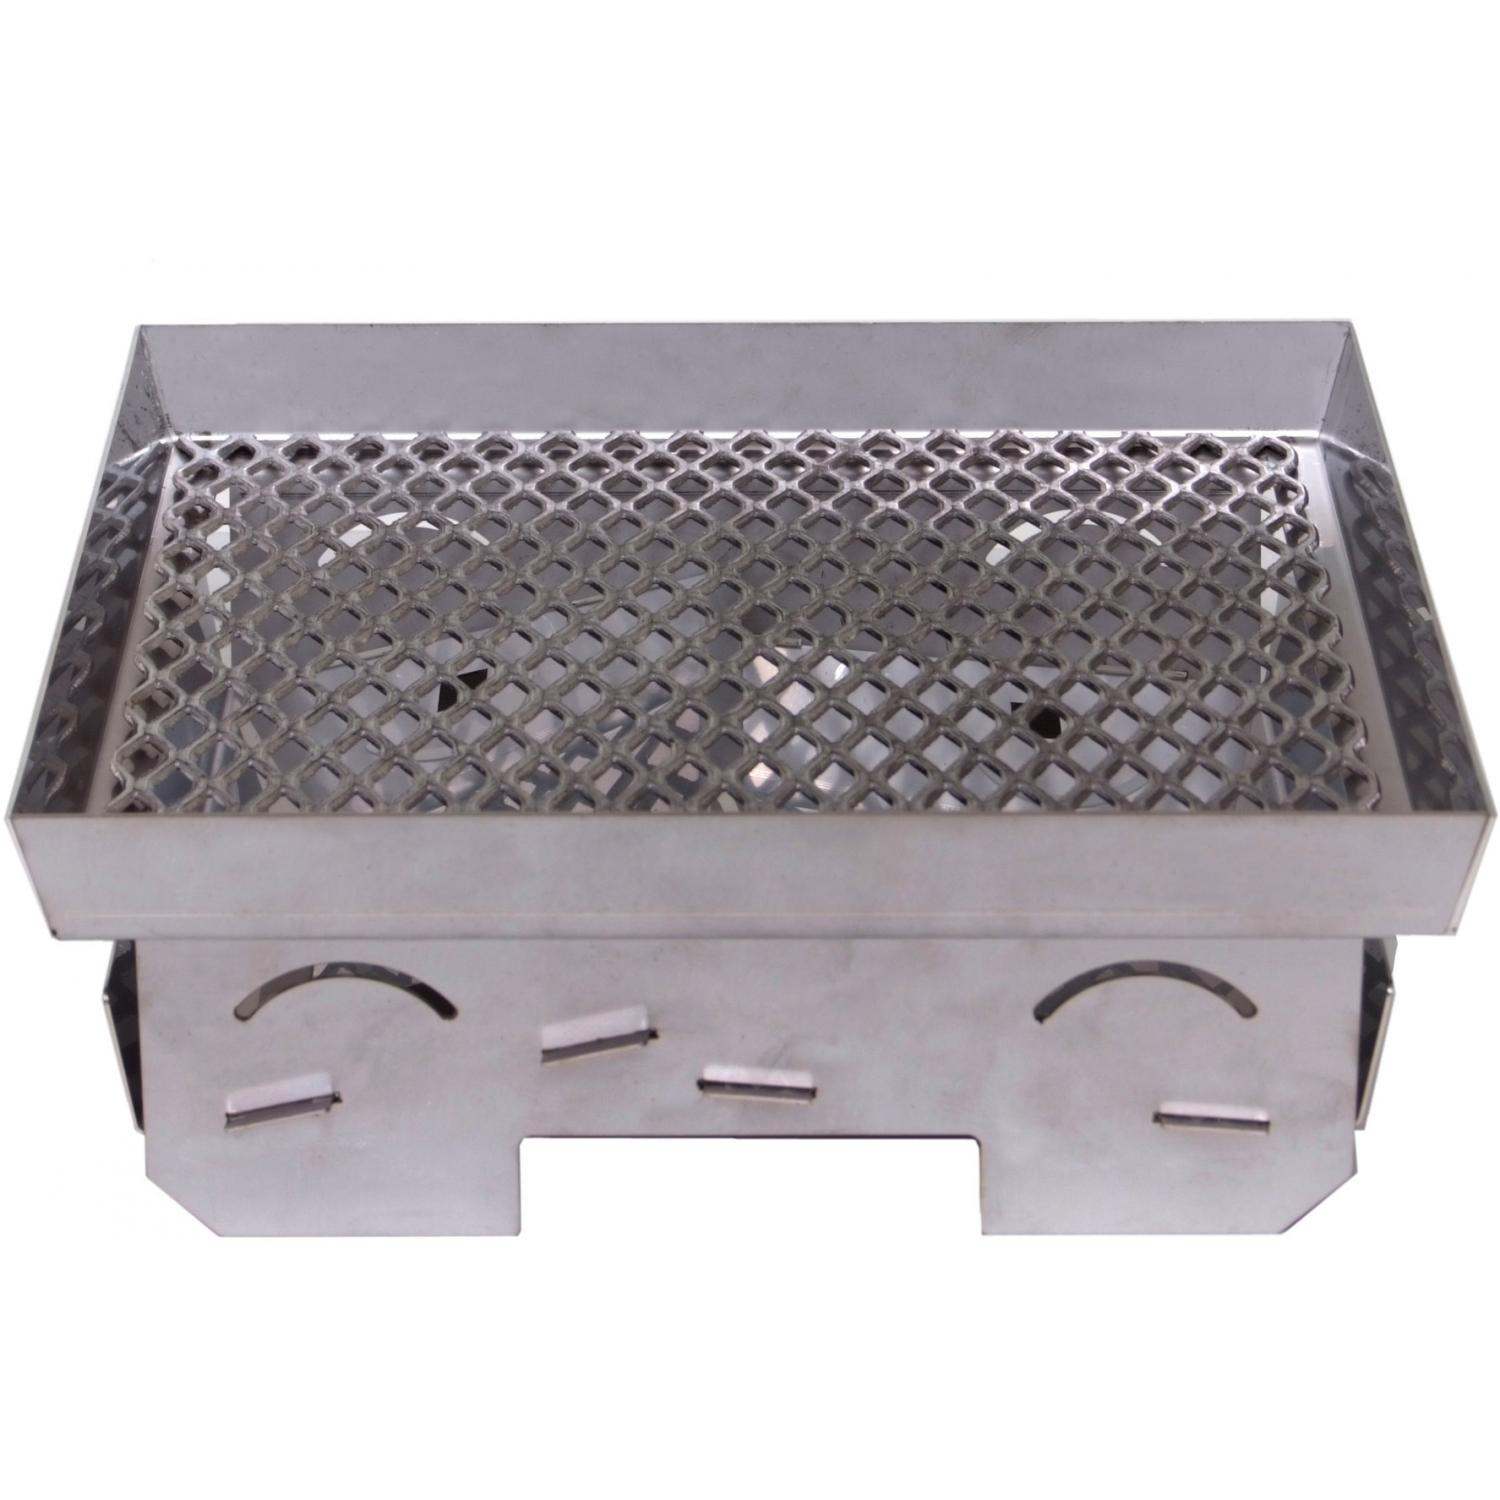 Fire Magic Charcoal Baskets For Aurora A540 And A430 Gas Grills